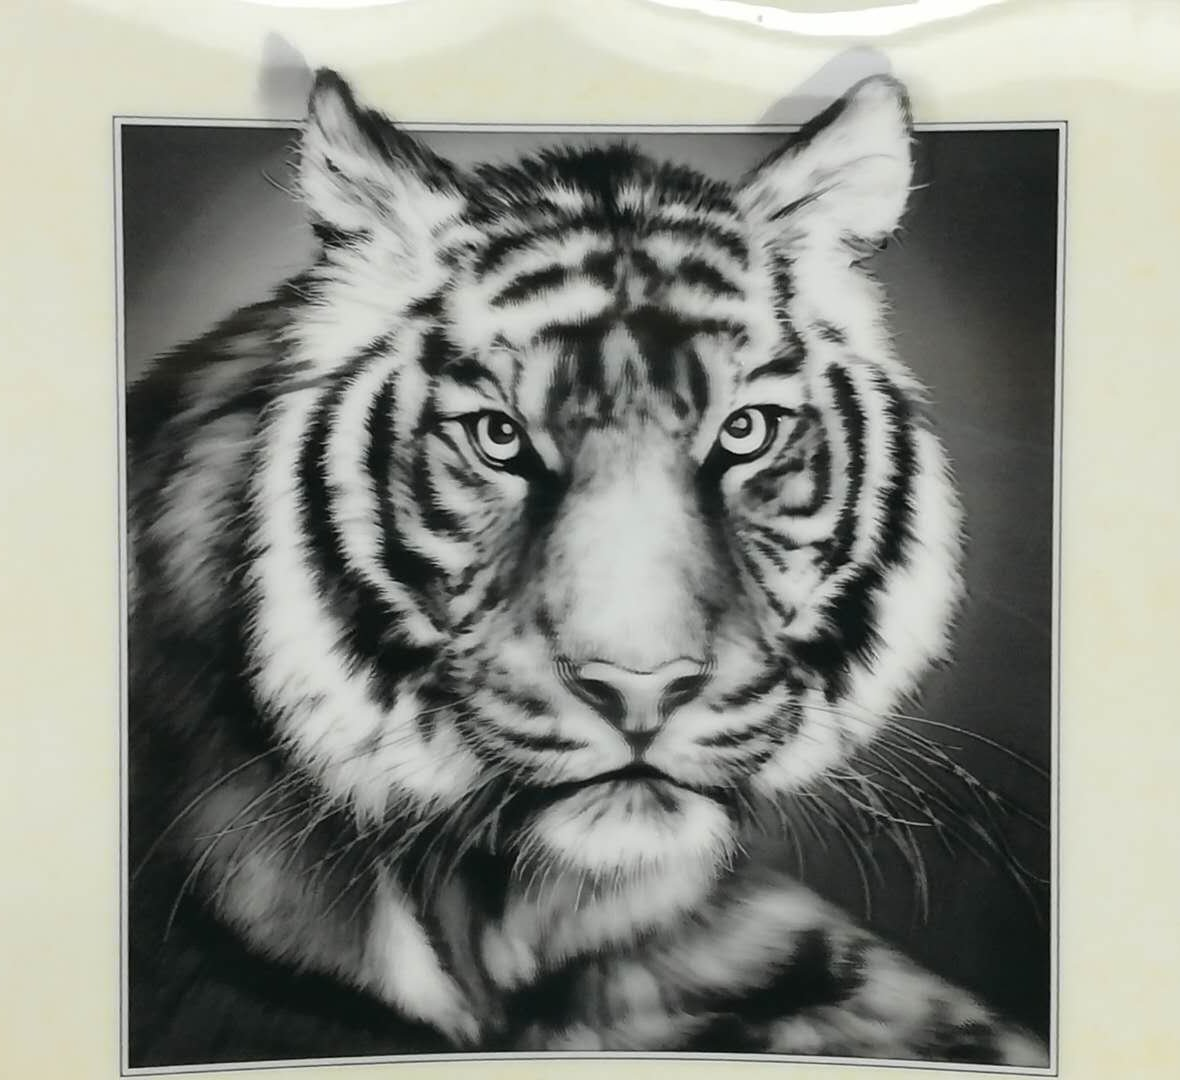 437c803a7 Nimble House ® ™ Lenticular 3D Home Decoration Beautiful Black & White Tiger  Portrait Painting (40X40CM) Without Frame: Amazon.in: Home & Kitchen